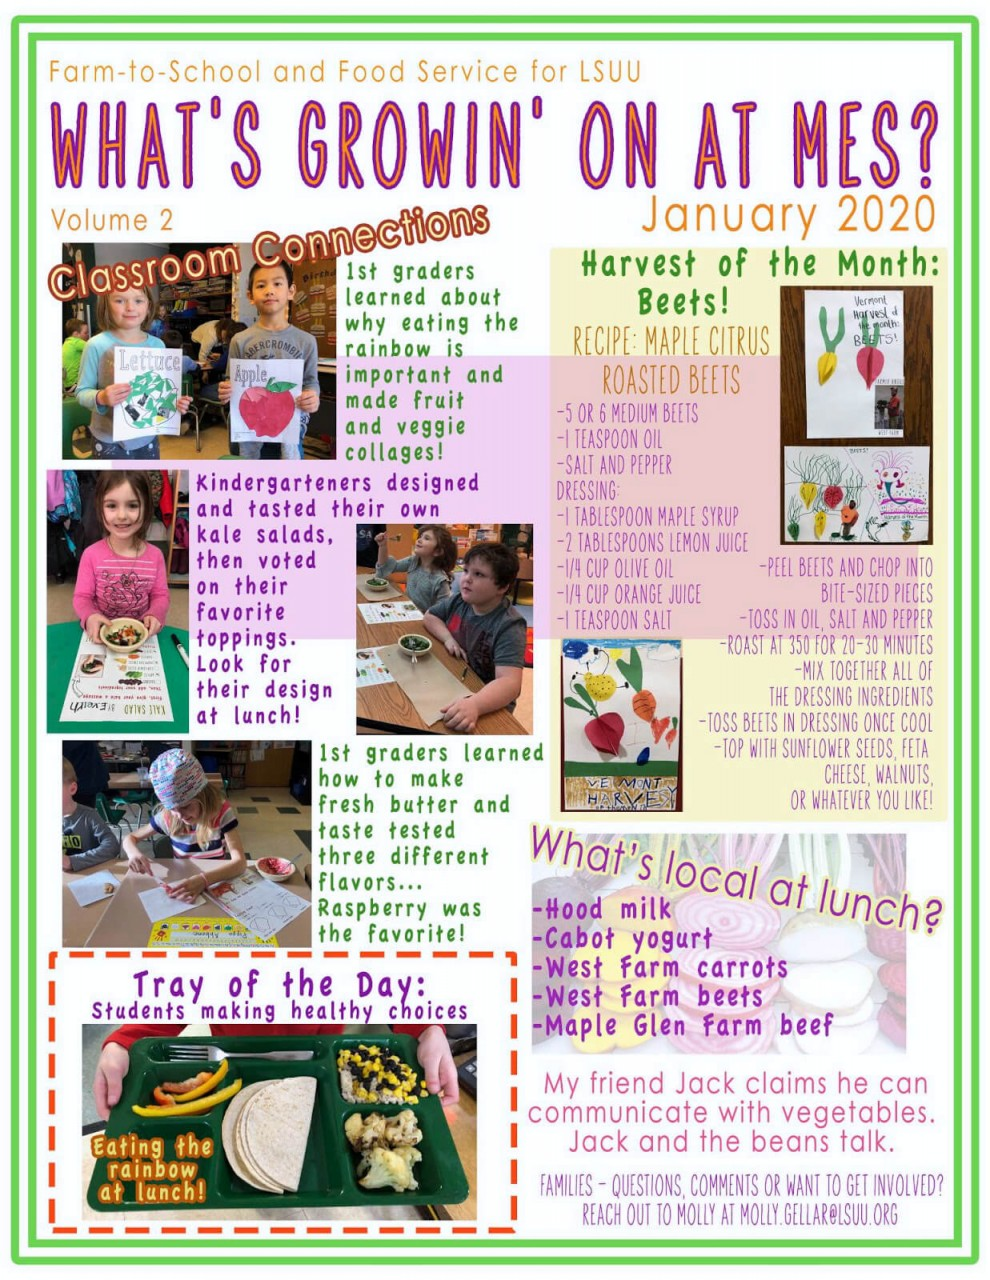 What's Growin' On at MES? January 2020